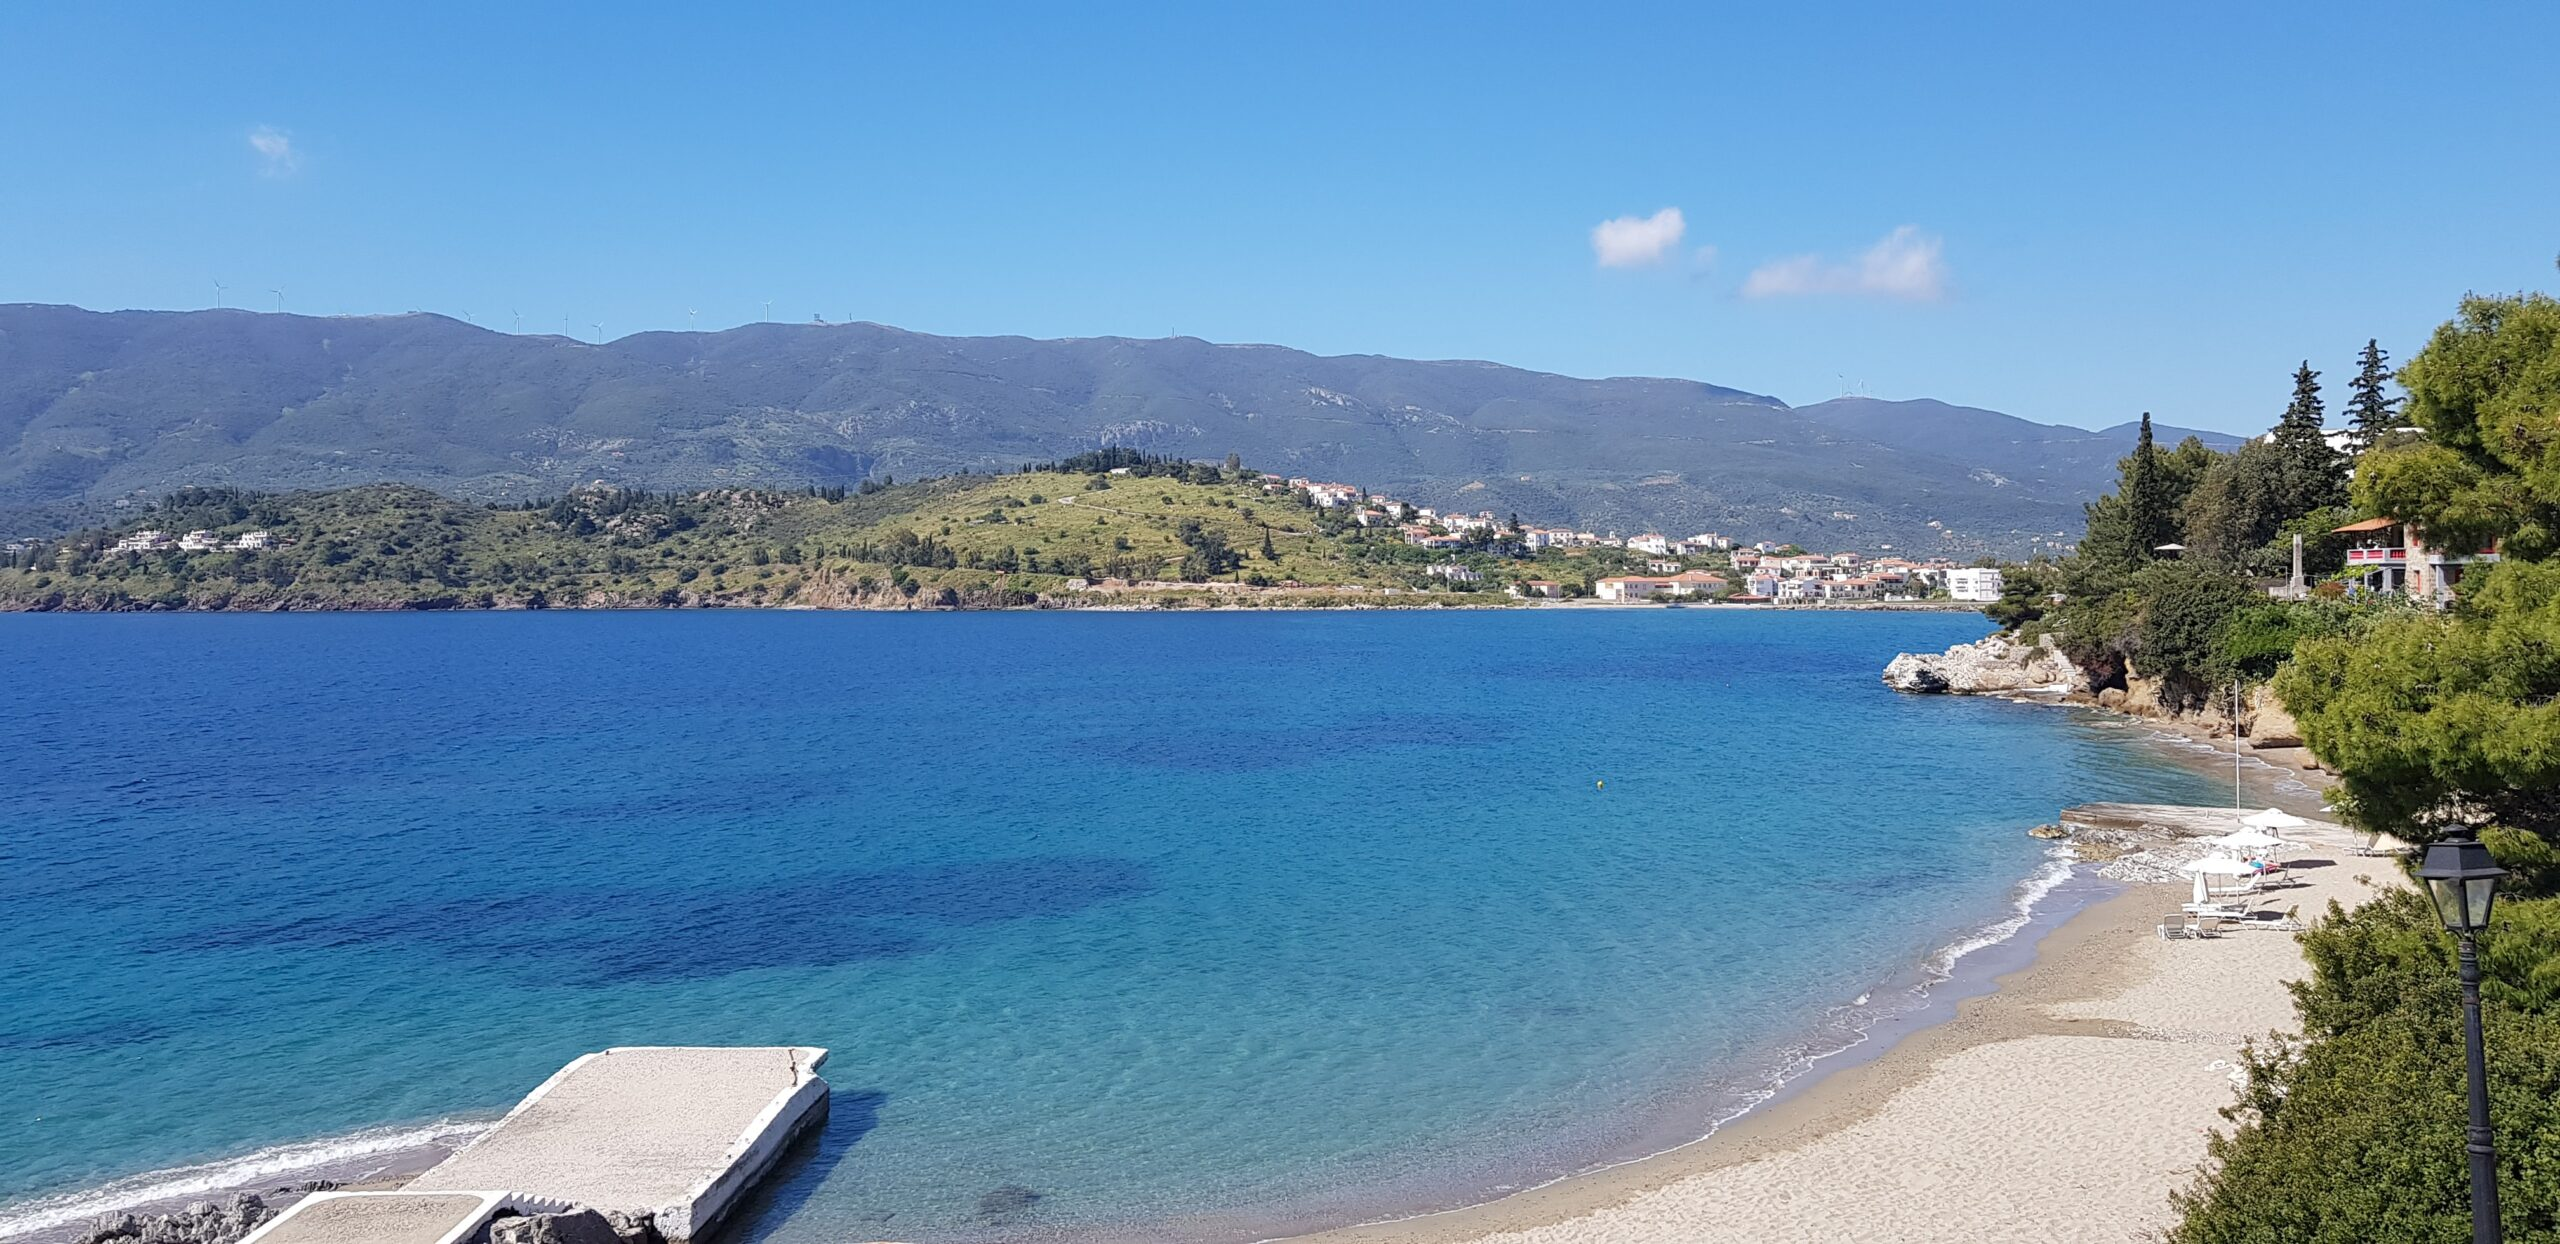 Visit Hydra On Our 8 Day Ancient Greece Tour Package